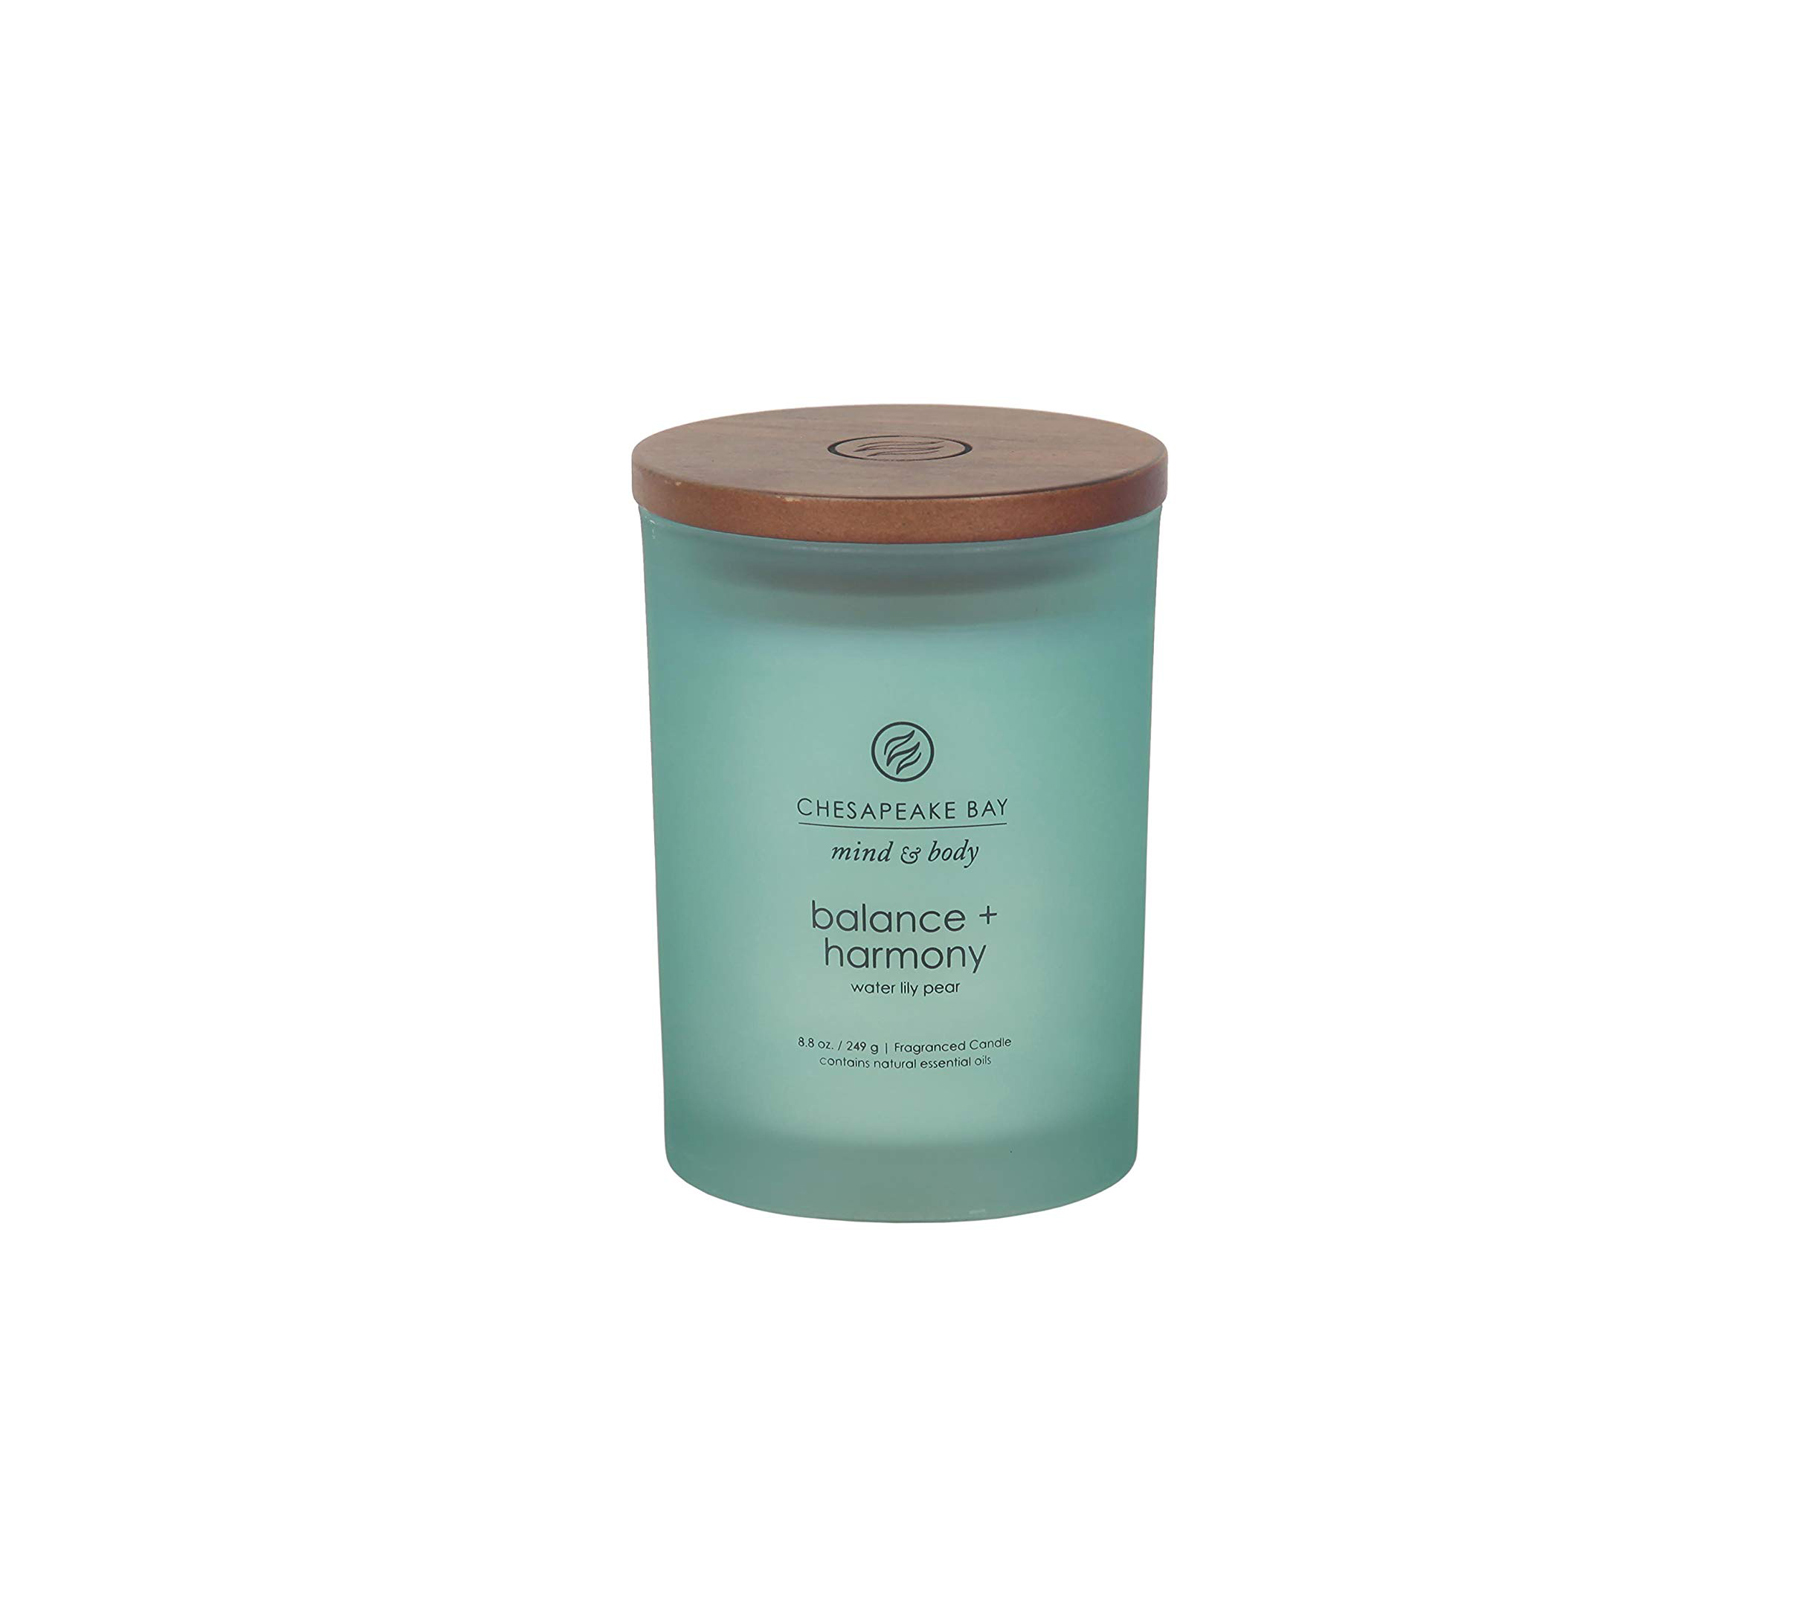 Chesapeake Bay Company Mind & Body Medium Scented Candle